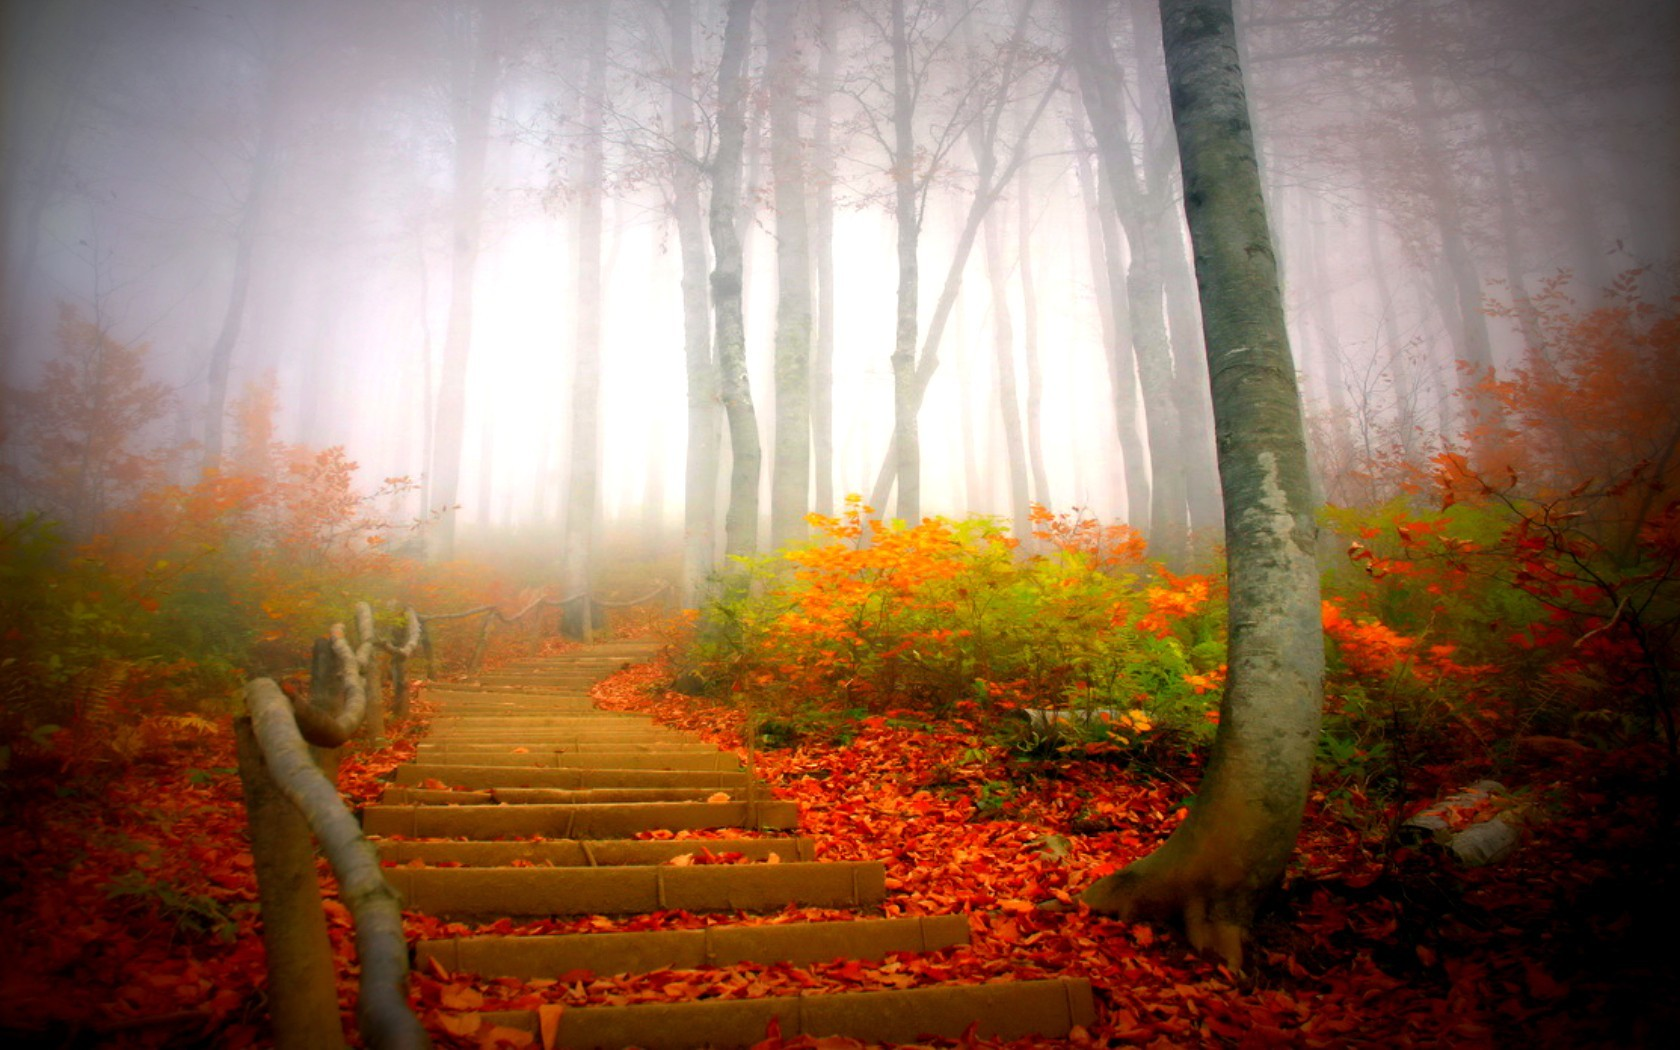 autumn forests paths mist HD Wallpaper